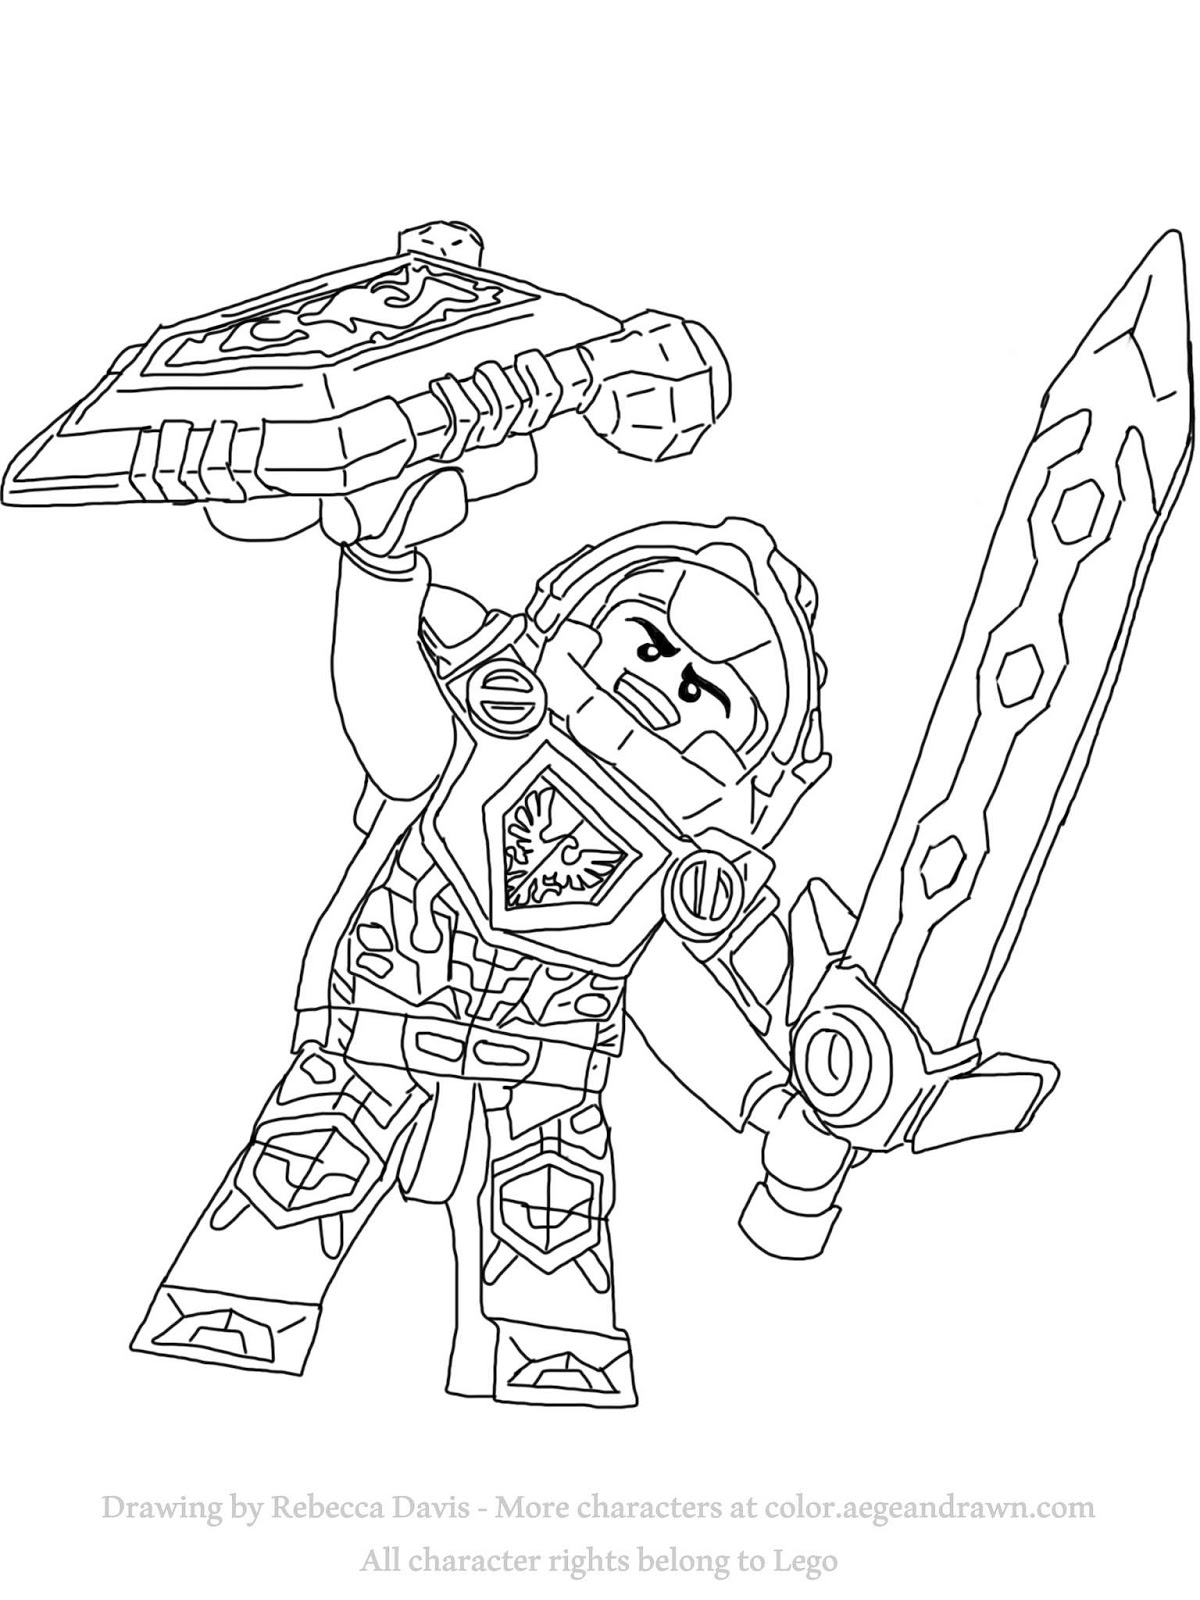 Knights Drawing at GetDrawings.com | Free for personal use Knights ...